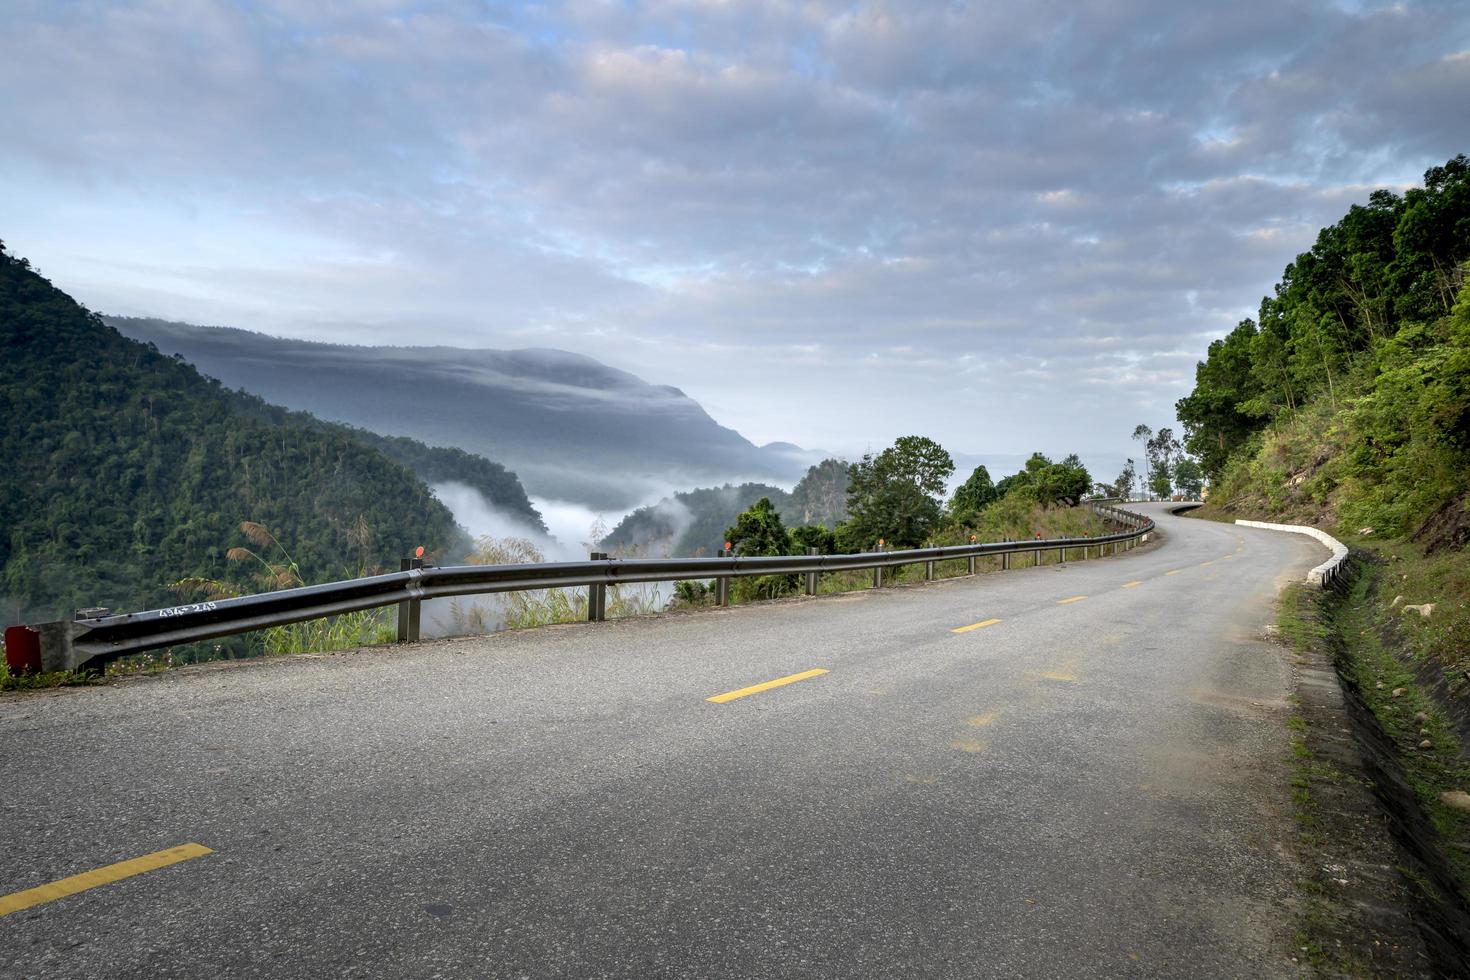 Road next to foggy forest and mountains with cloudy sky photo